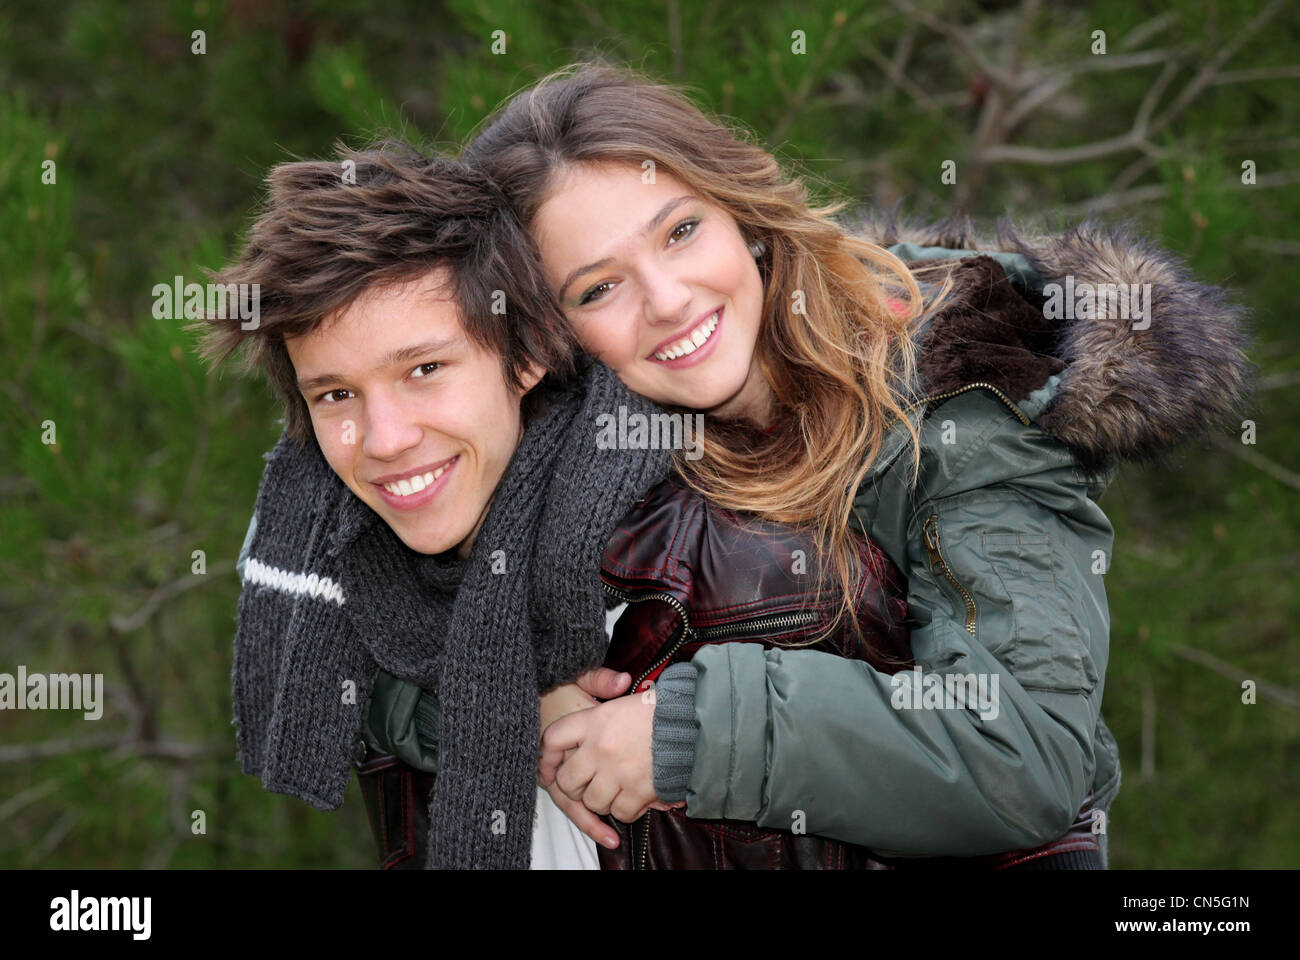 happy smiling teen couple in piggy back in winter clothing - Stock Image